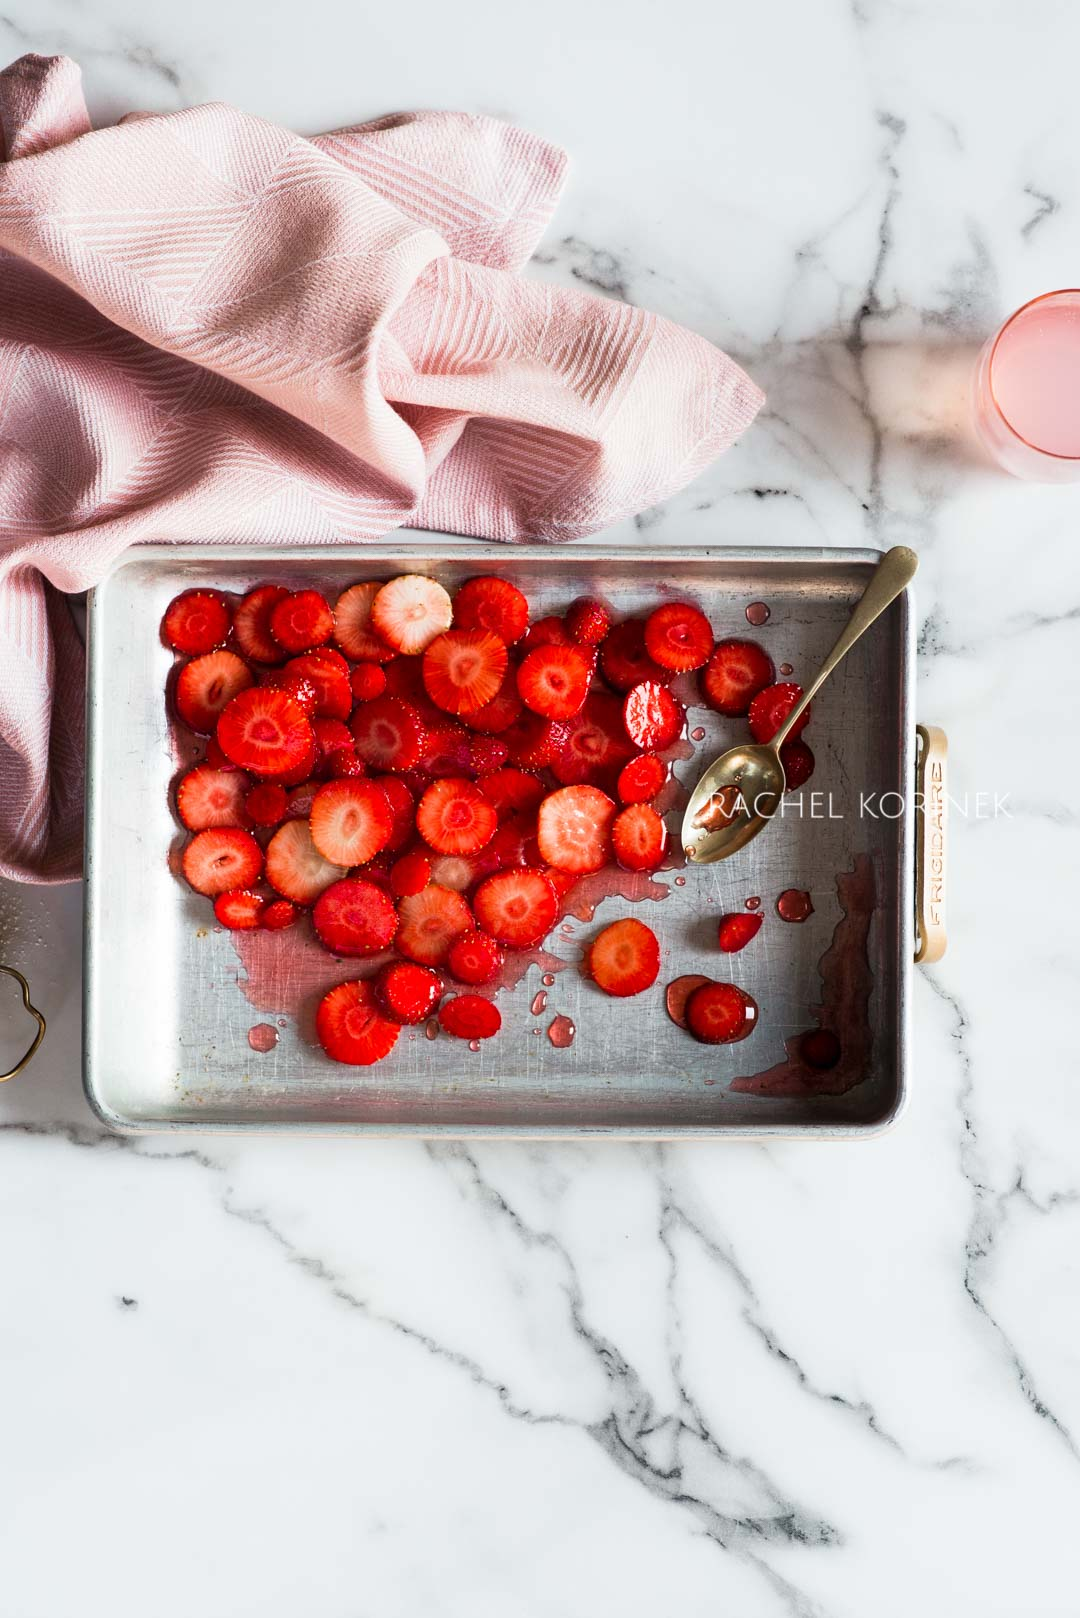 Rachel Korinek Melbourne Food Photographer Strawberry Syrup  Click to check out my latest food photography projects.  #twolovesstudio #beautifulcuisine #foodbloggerpro #foodphotography #learnfoodphotography #foodblogger #learnphotography #foodstyling #lightingtips #naturallight #foodphotographer